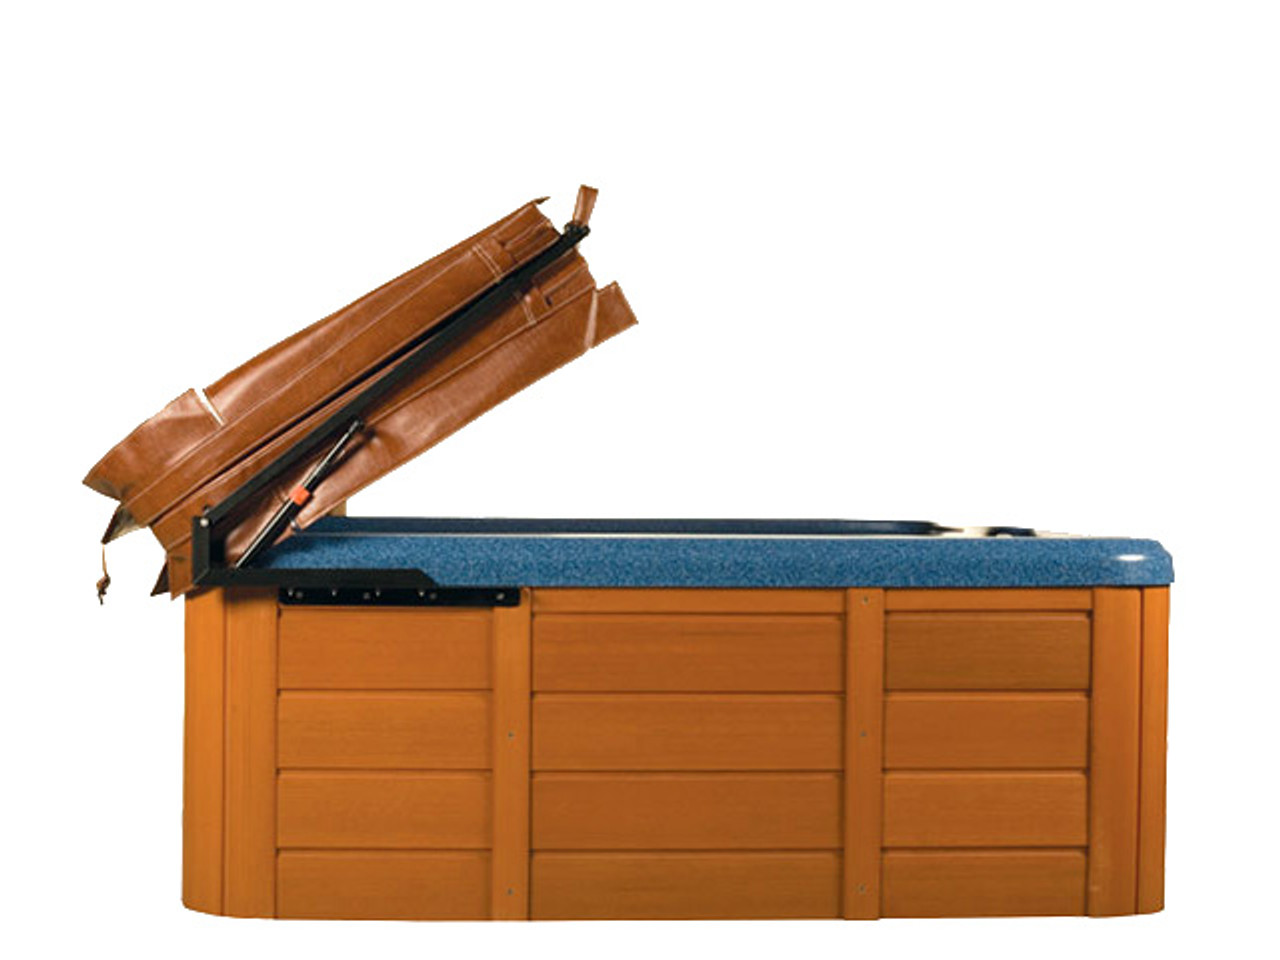 Master Spa - CV90201 - Cover Valet - Premium Hot Tub Cover Lifter - Step3 View